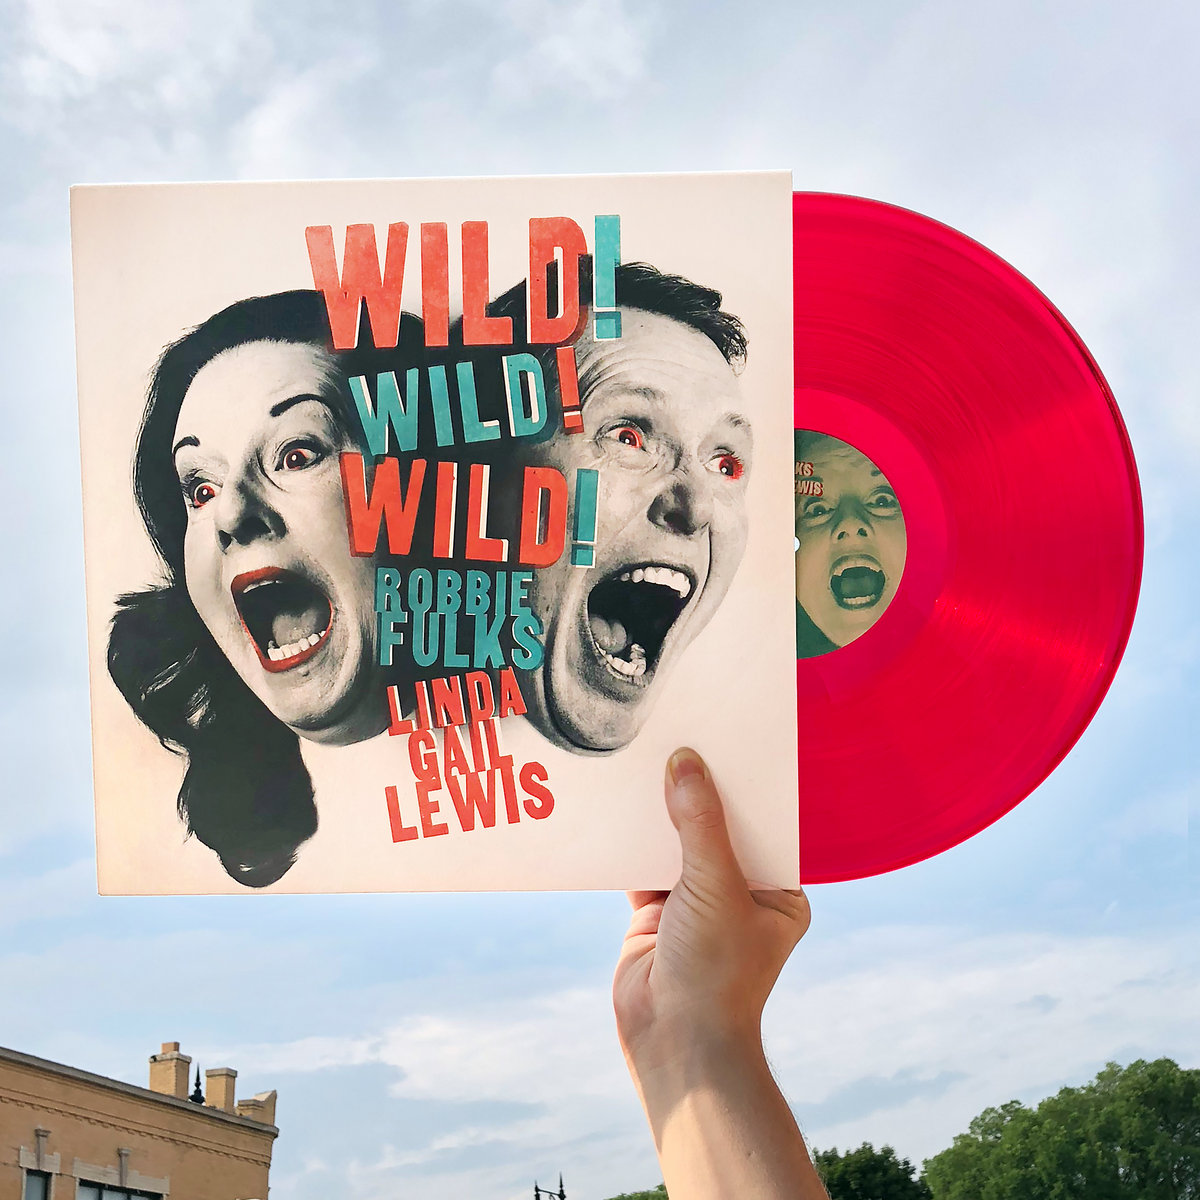 ea47e213bdbcc Includes unlimited streaming of Wild! Wild! Wild! via the free Bandcamp  app